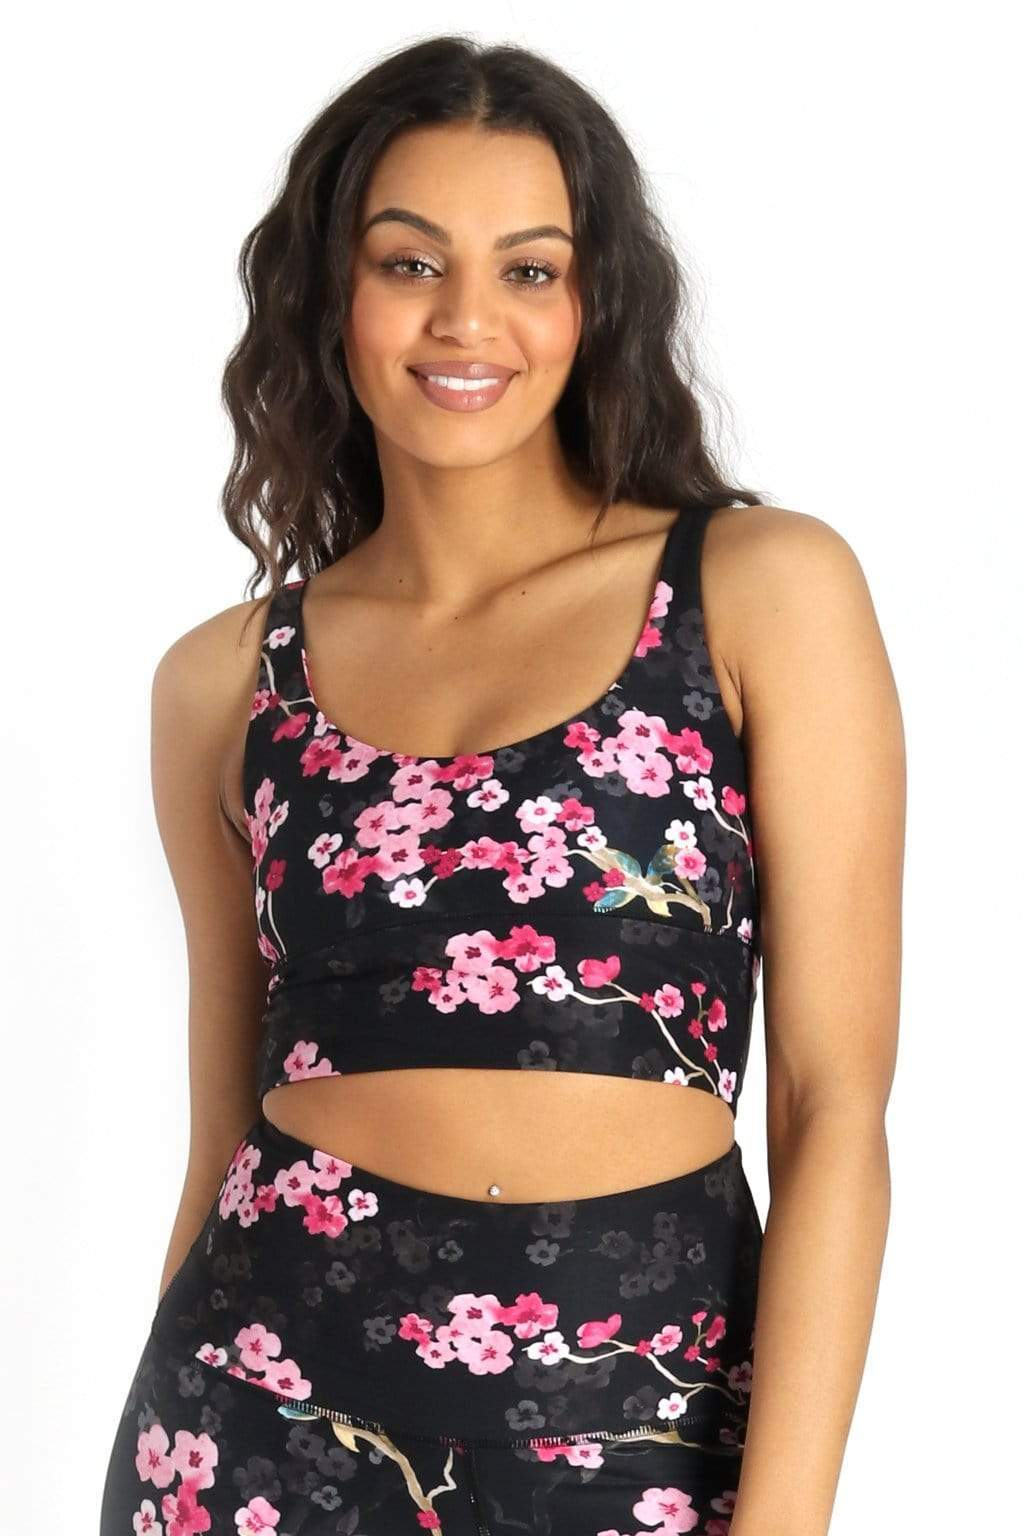 Limitless Sports Bra in Cherry Bloomin | Medium Support, A - E Cups